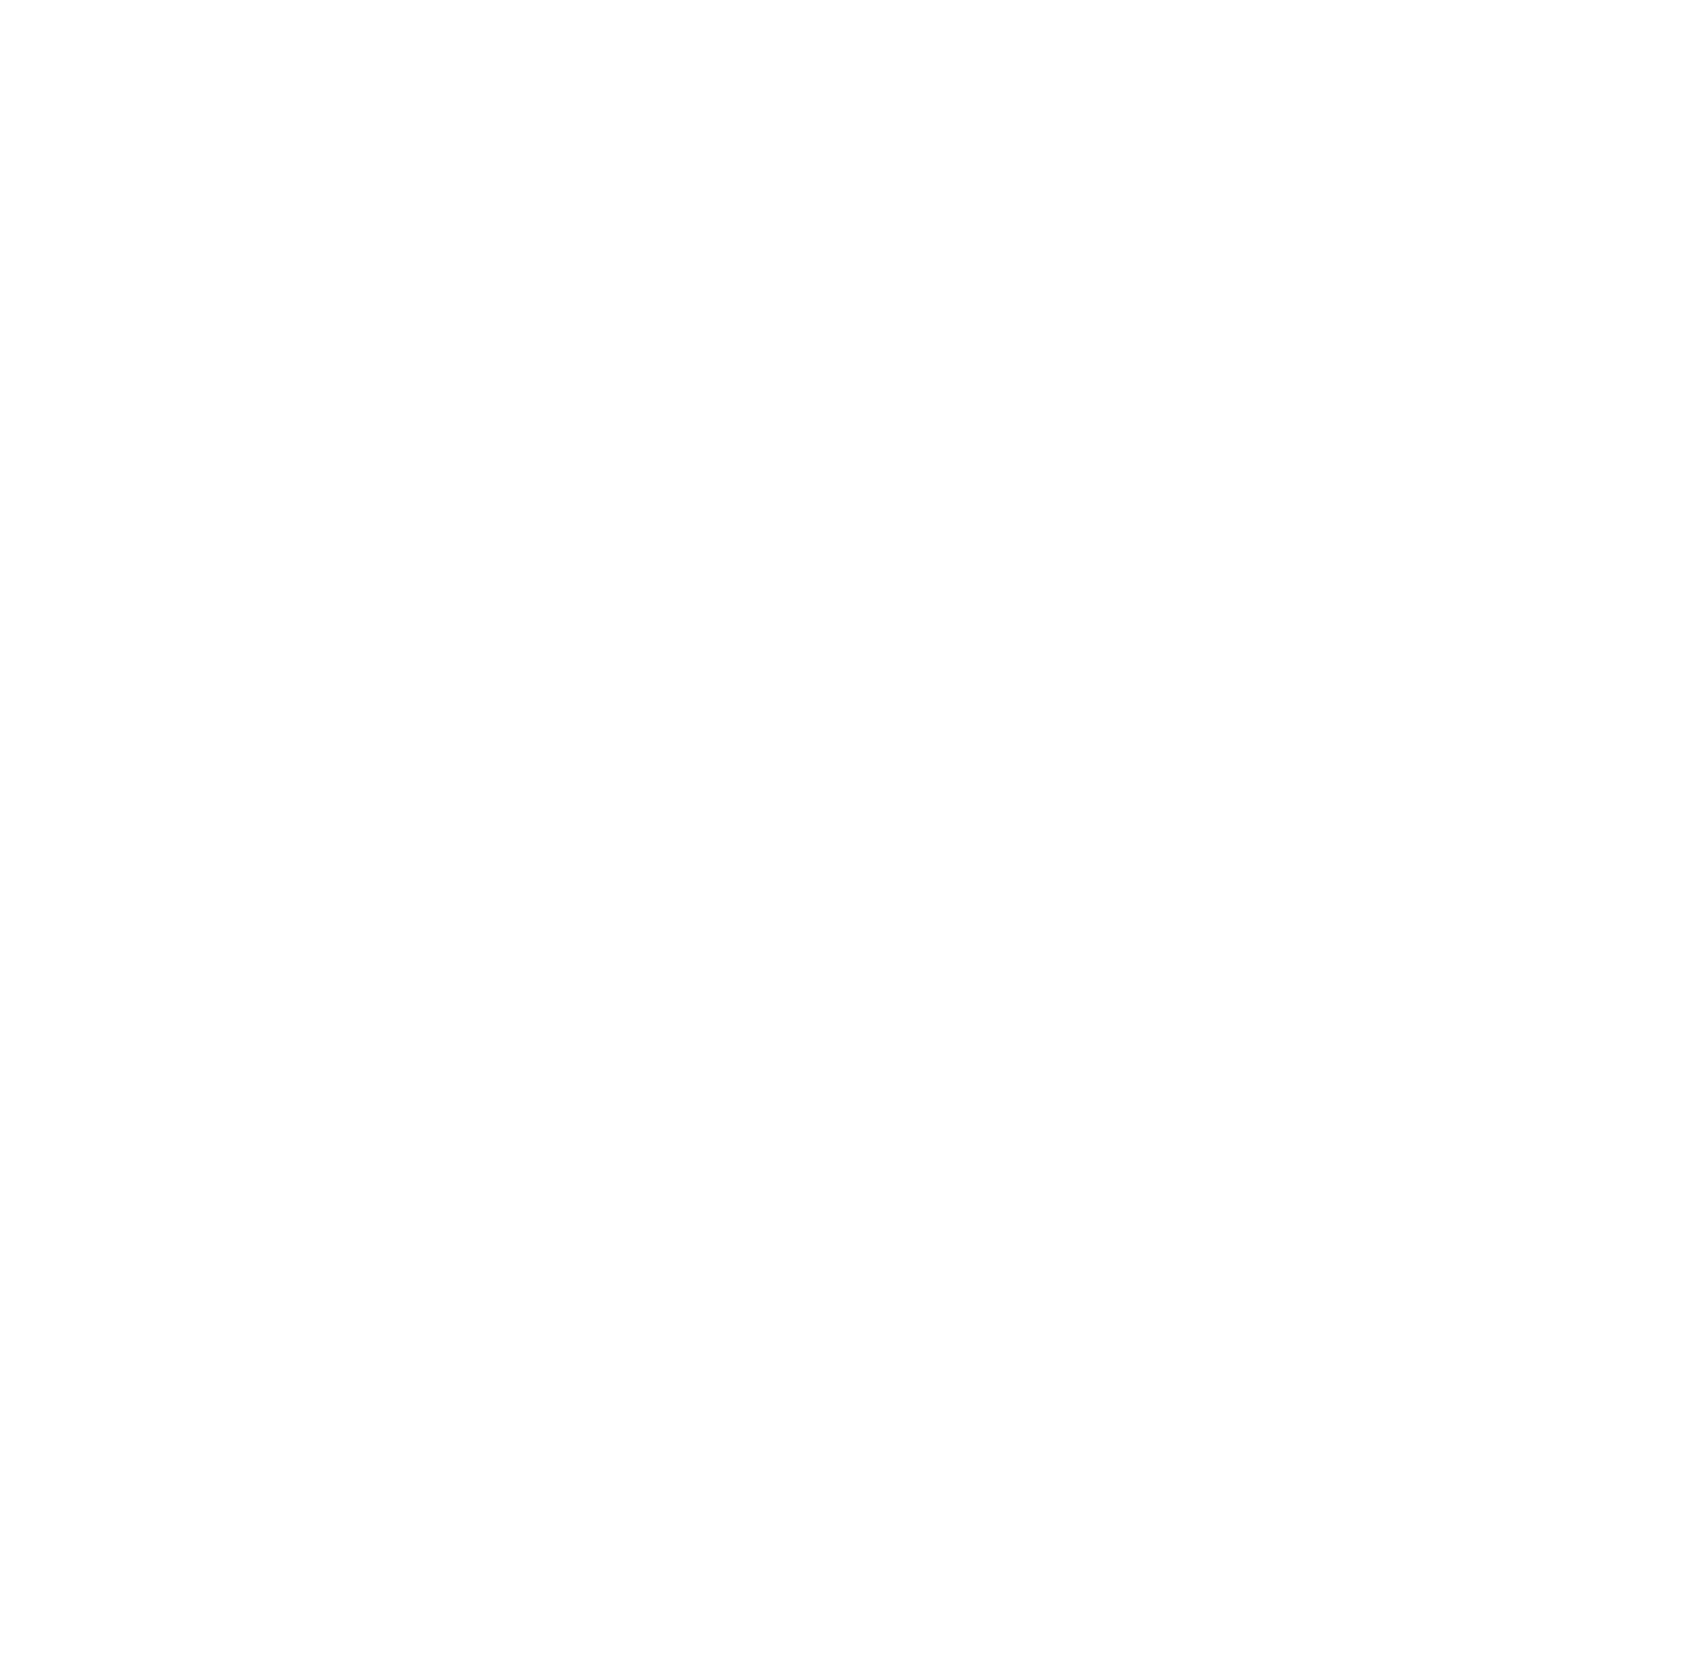 Bullard's Children's Dentistry in Sheboygan, WI